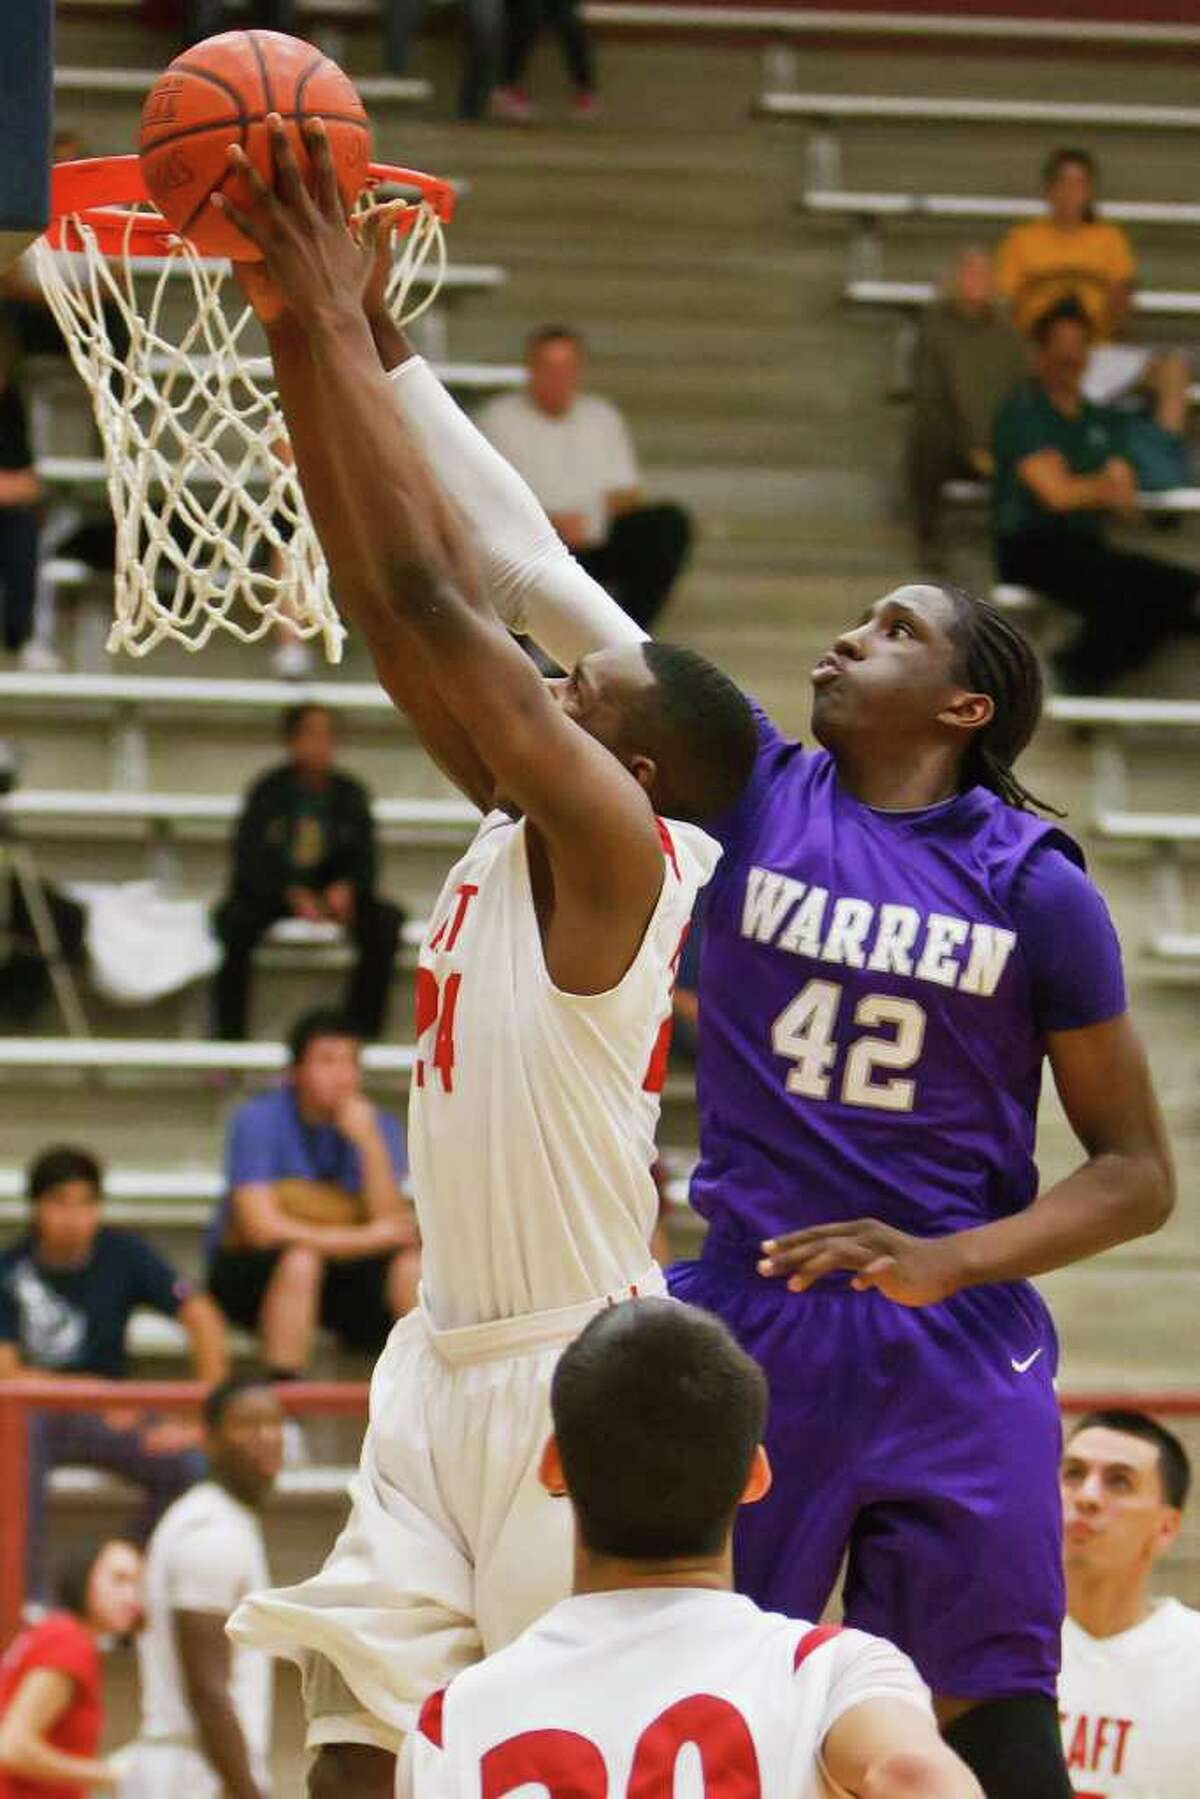 Warren's Taurean Prince-Waller (right) battles Taft's Deondre Logan at the rim during the fourth quarter of their game at the O'Connor Gym on Feb. 5, 2010. Logan led all scorers with 28 points to help the Raiders come away with a hard fought 61-55 victory. MARVIN PFEIFFER/mpfeiffer@express-news.net